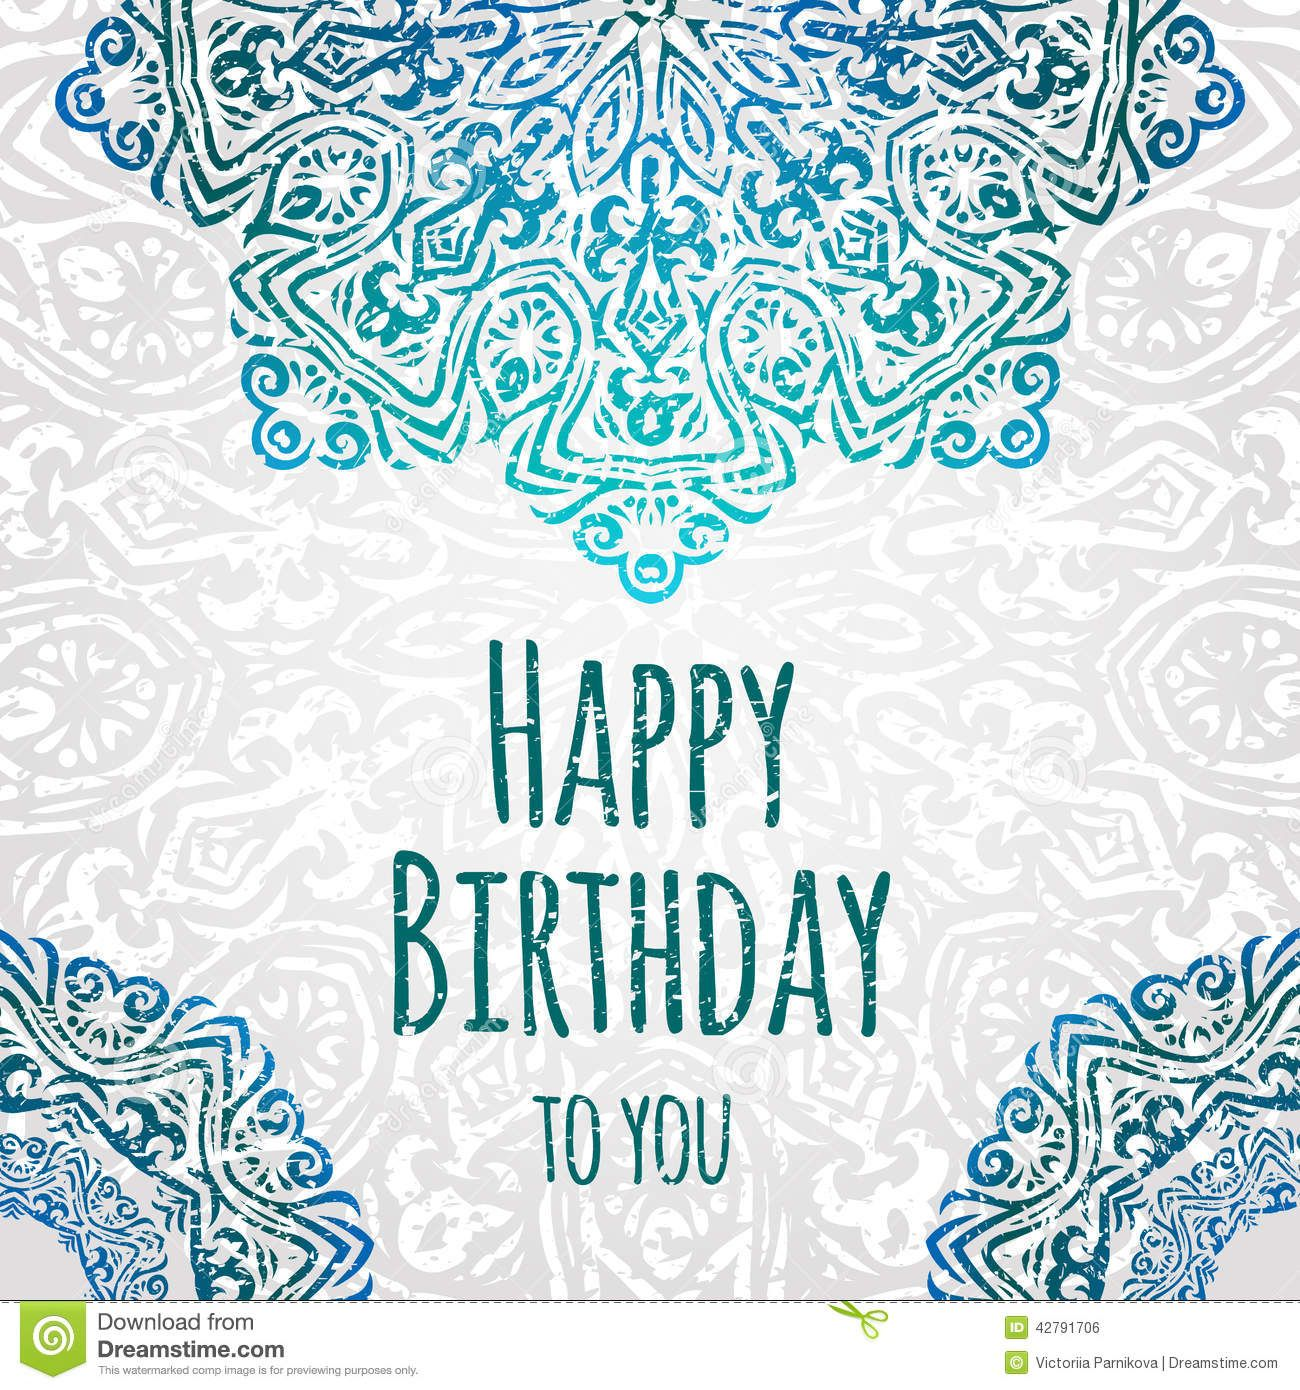 Happy birthday card templates free birthday card free funny birthday happy birthday card templates free ethnic birthday cards my birthday pinterest ethnic 24 bookmarktalkfo Images